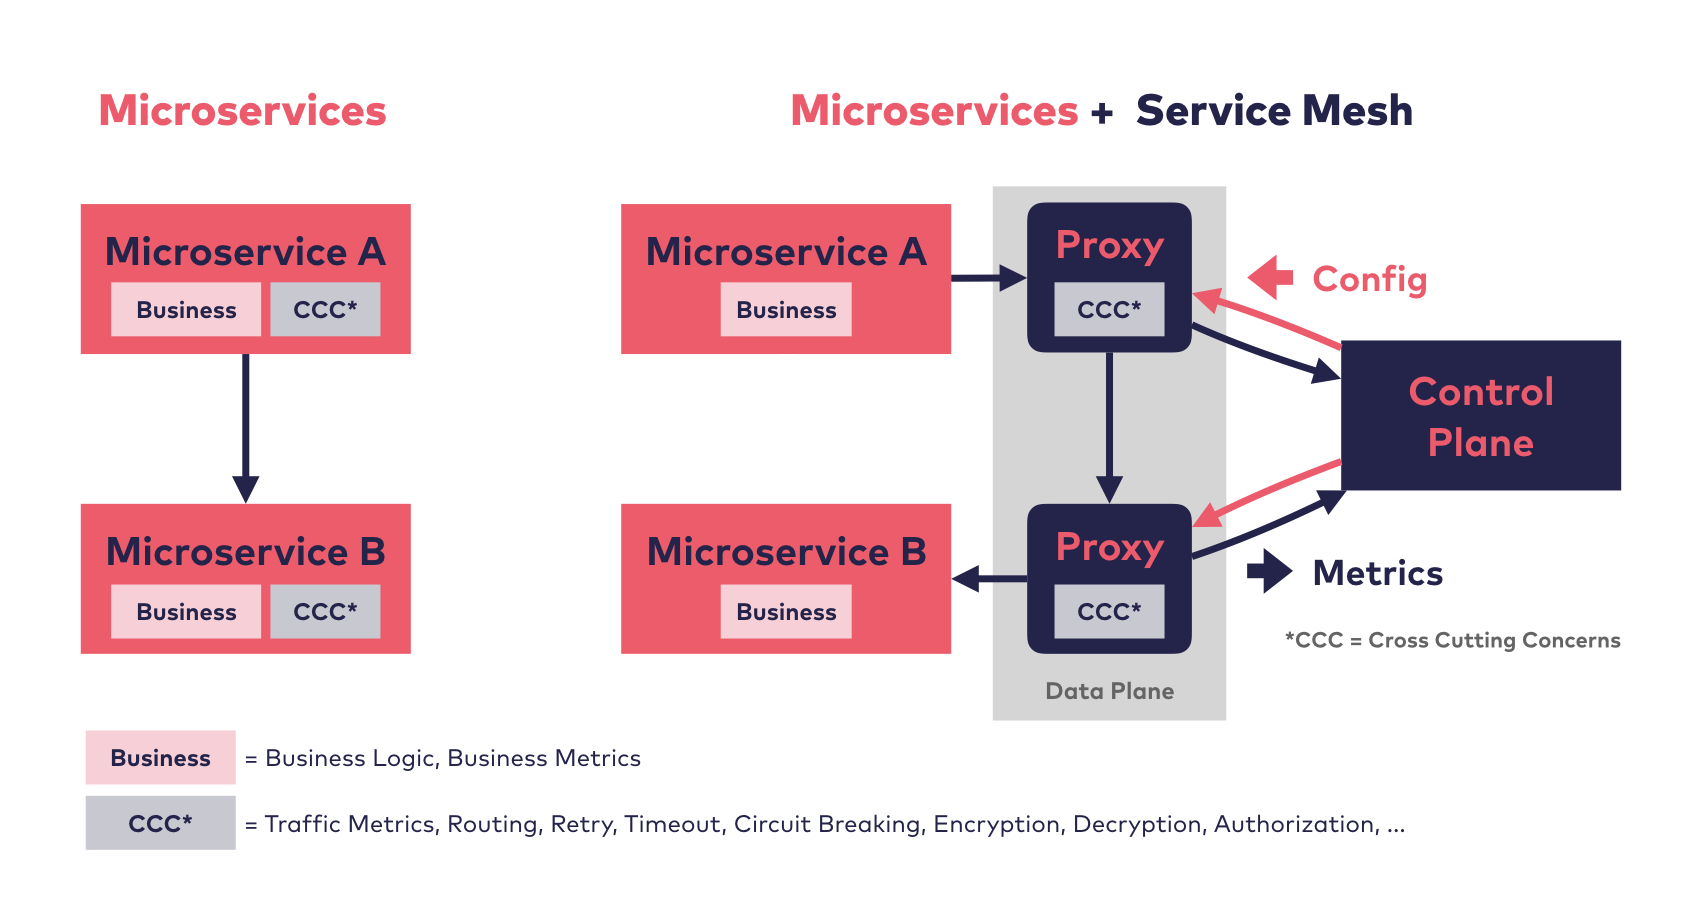 An image showing a comparison of a two-service microservice architecture with and without a Service Mesh.